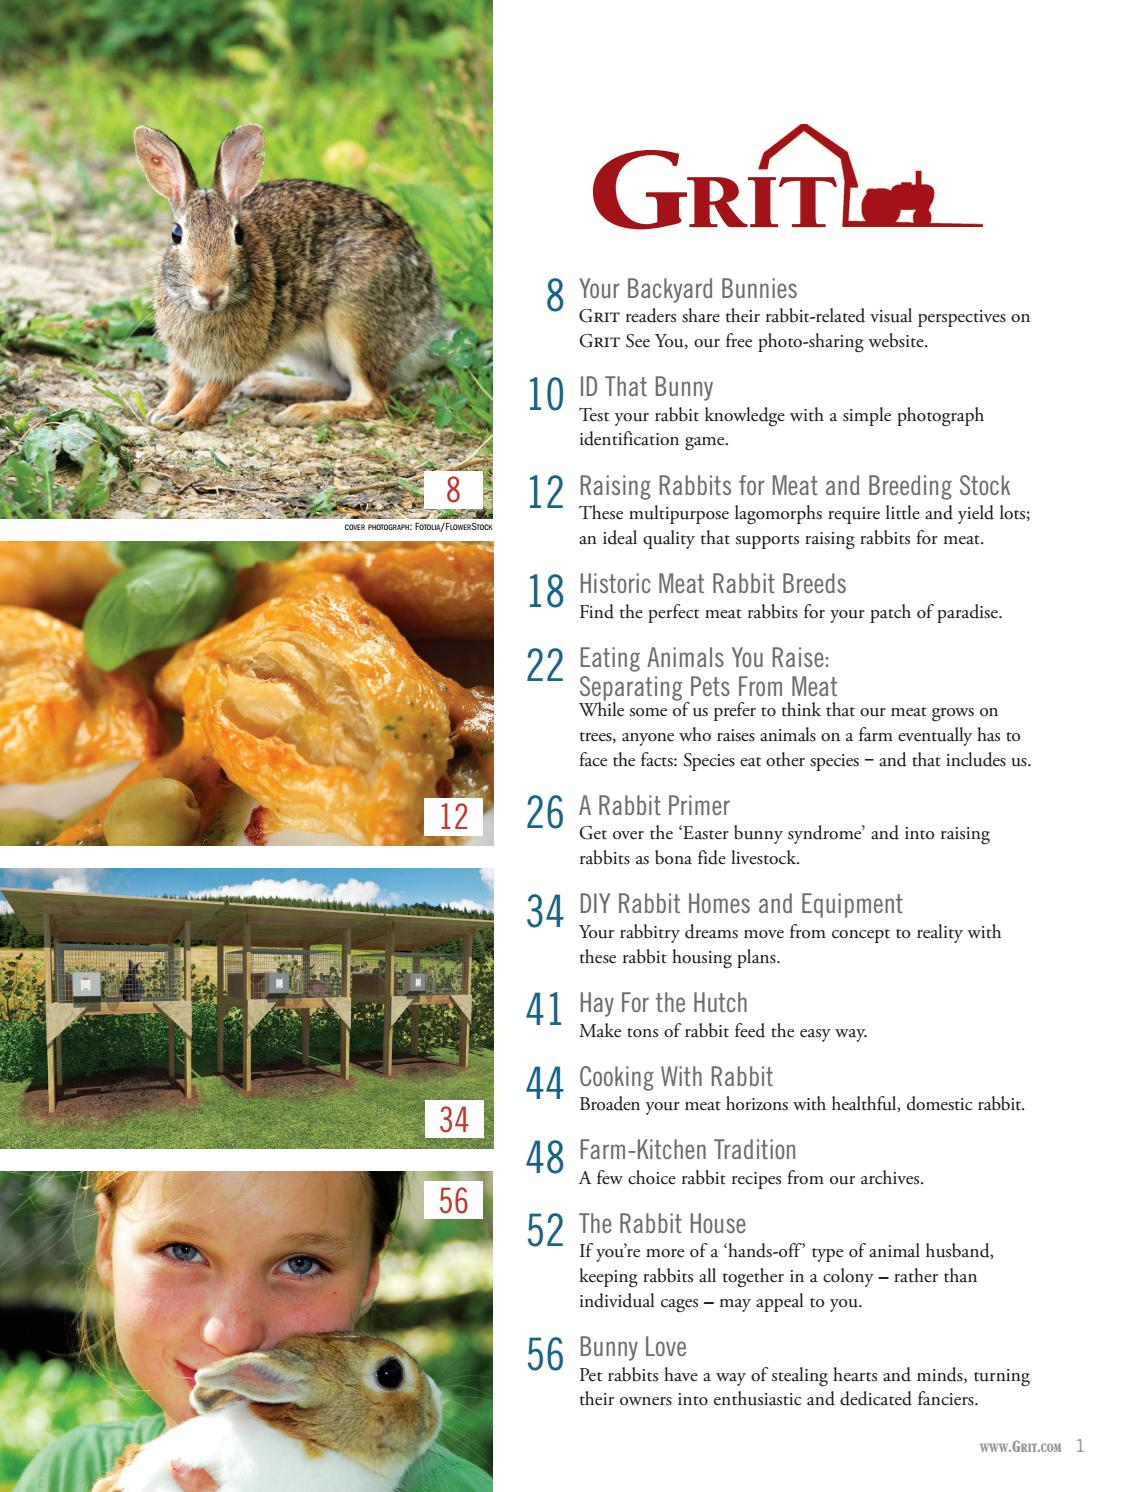 8201 Grit Guide To Backyard Rabbits 2017 By Ogden Publications Marketing Issuu